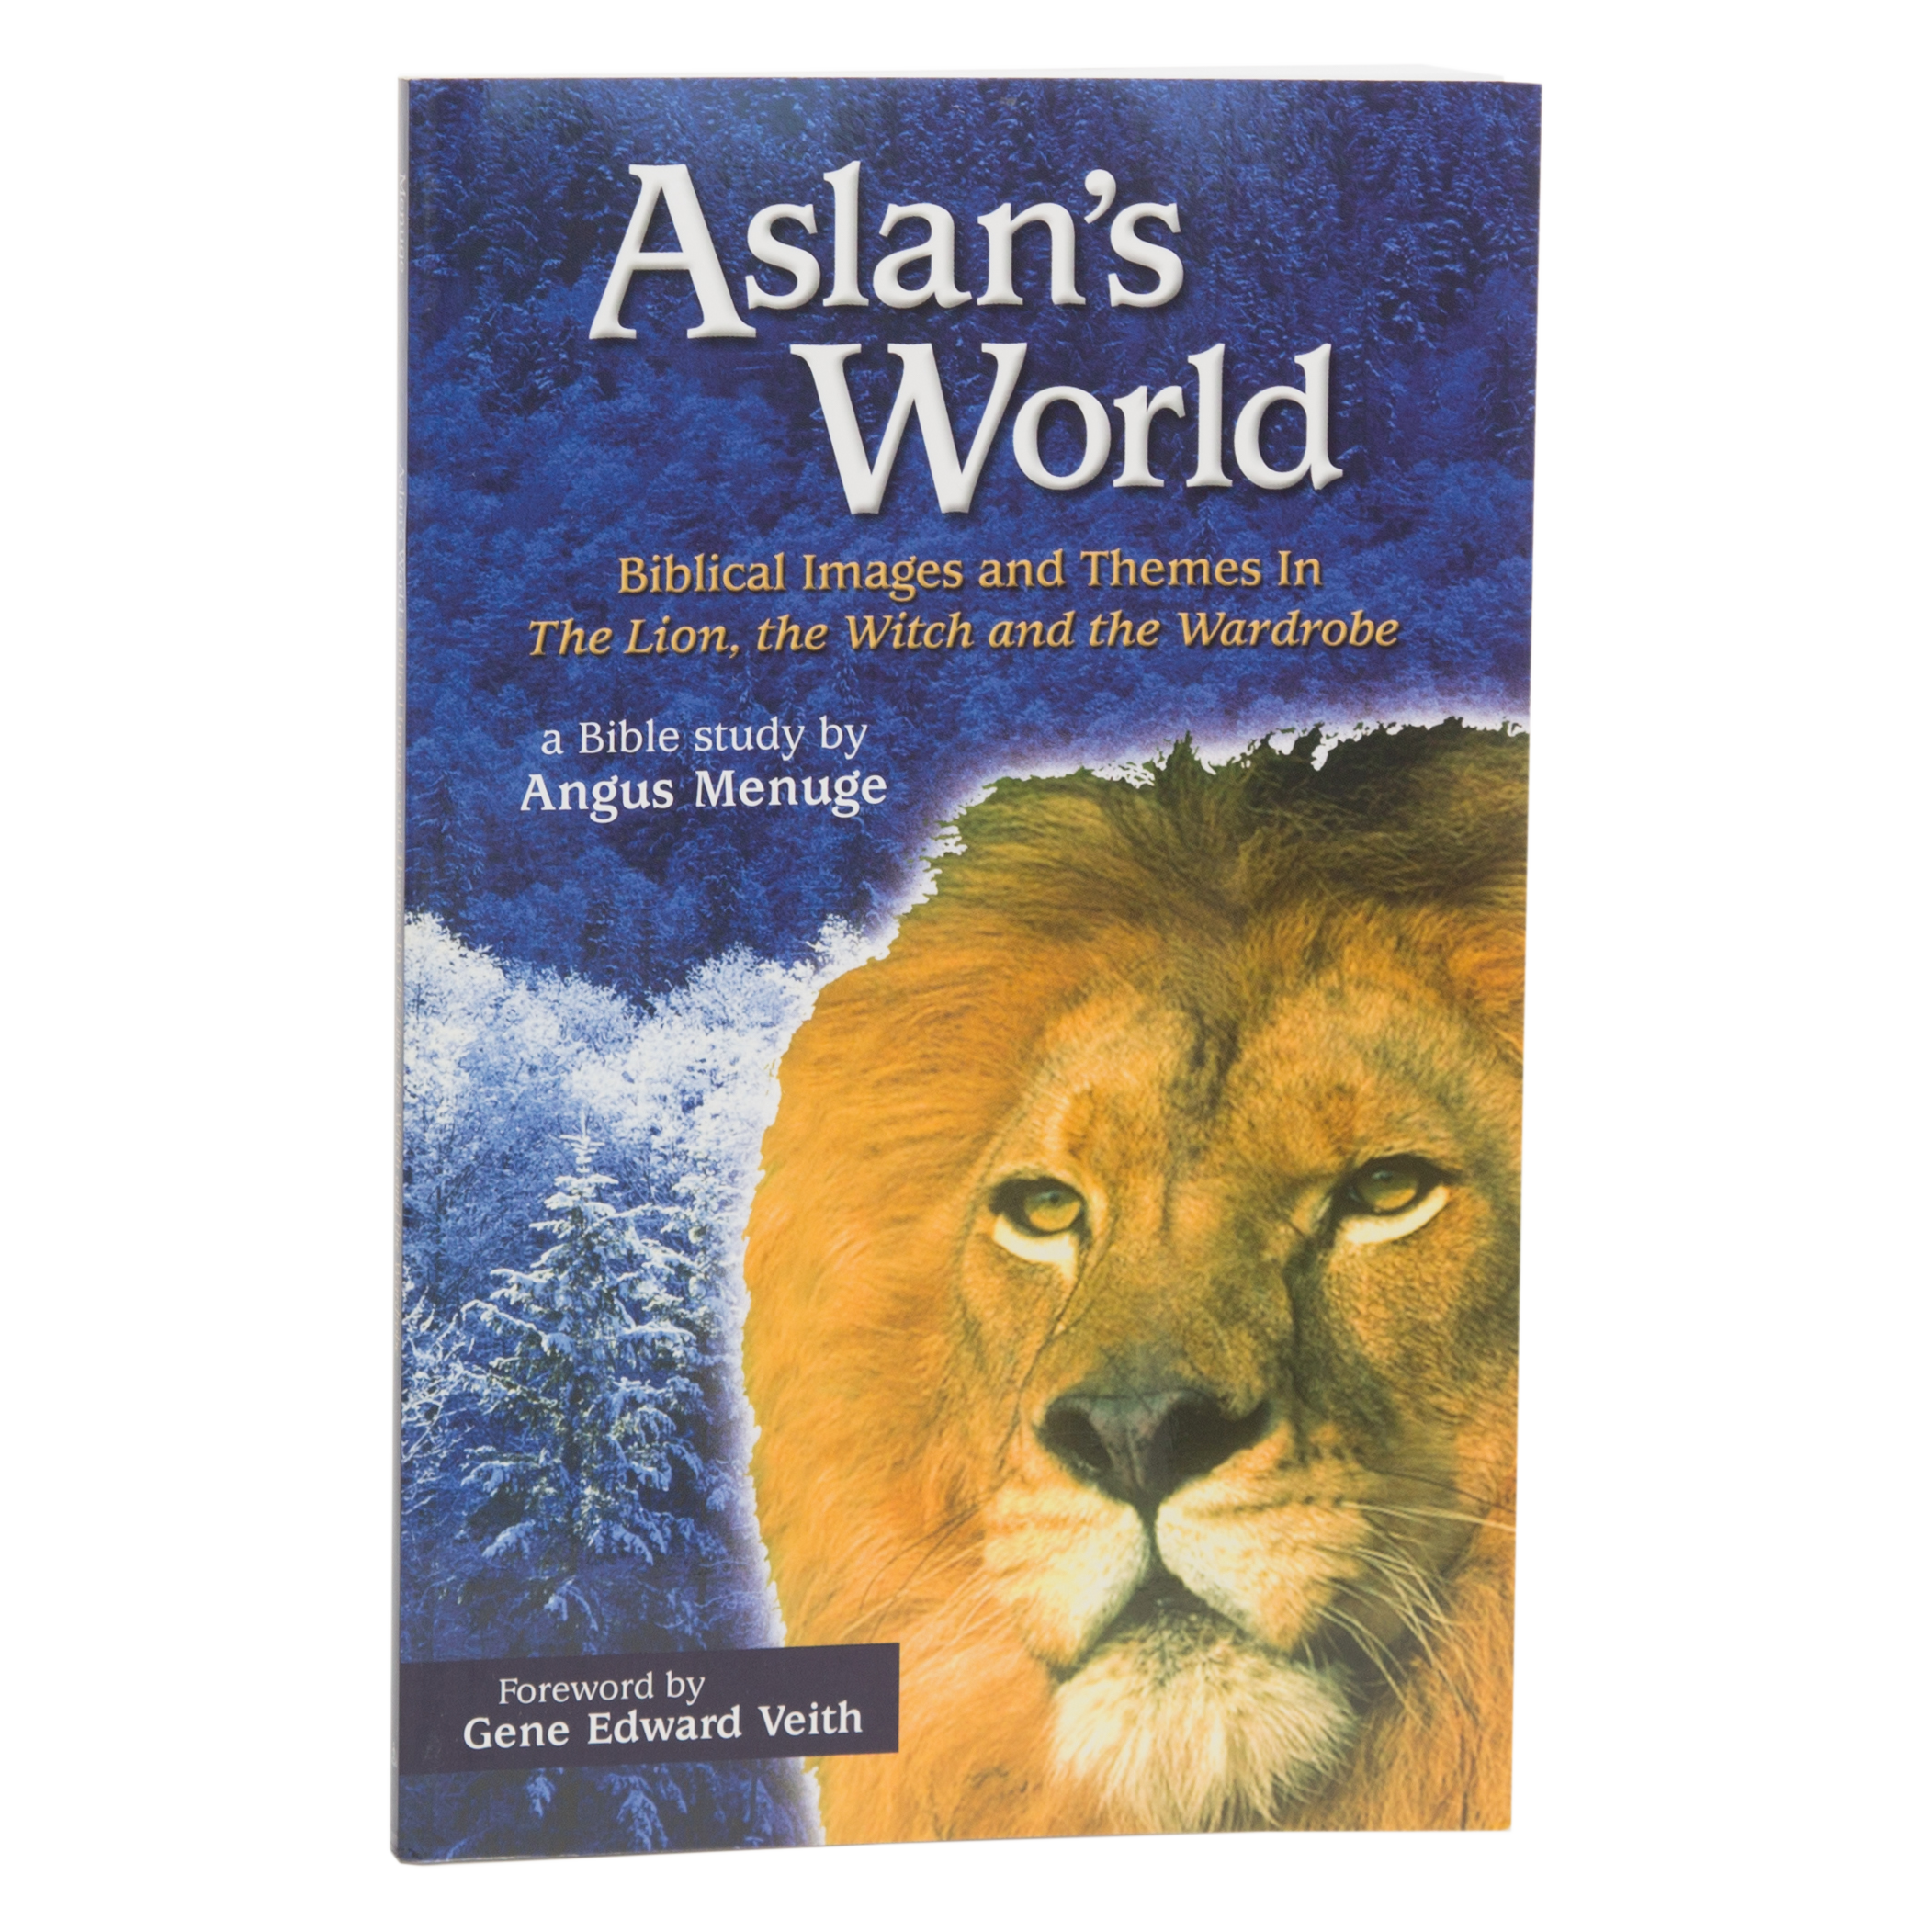 Aslan's World: Biblical Images and Themes In The Lion, the Witch and the  Wardrobe.